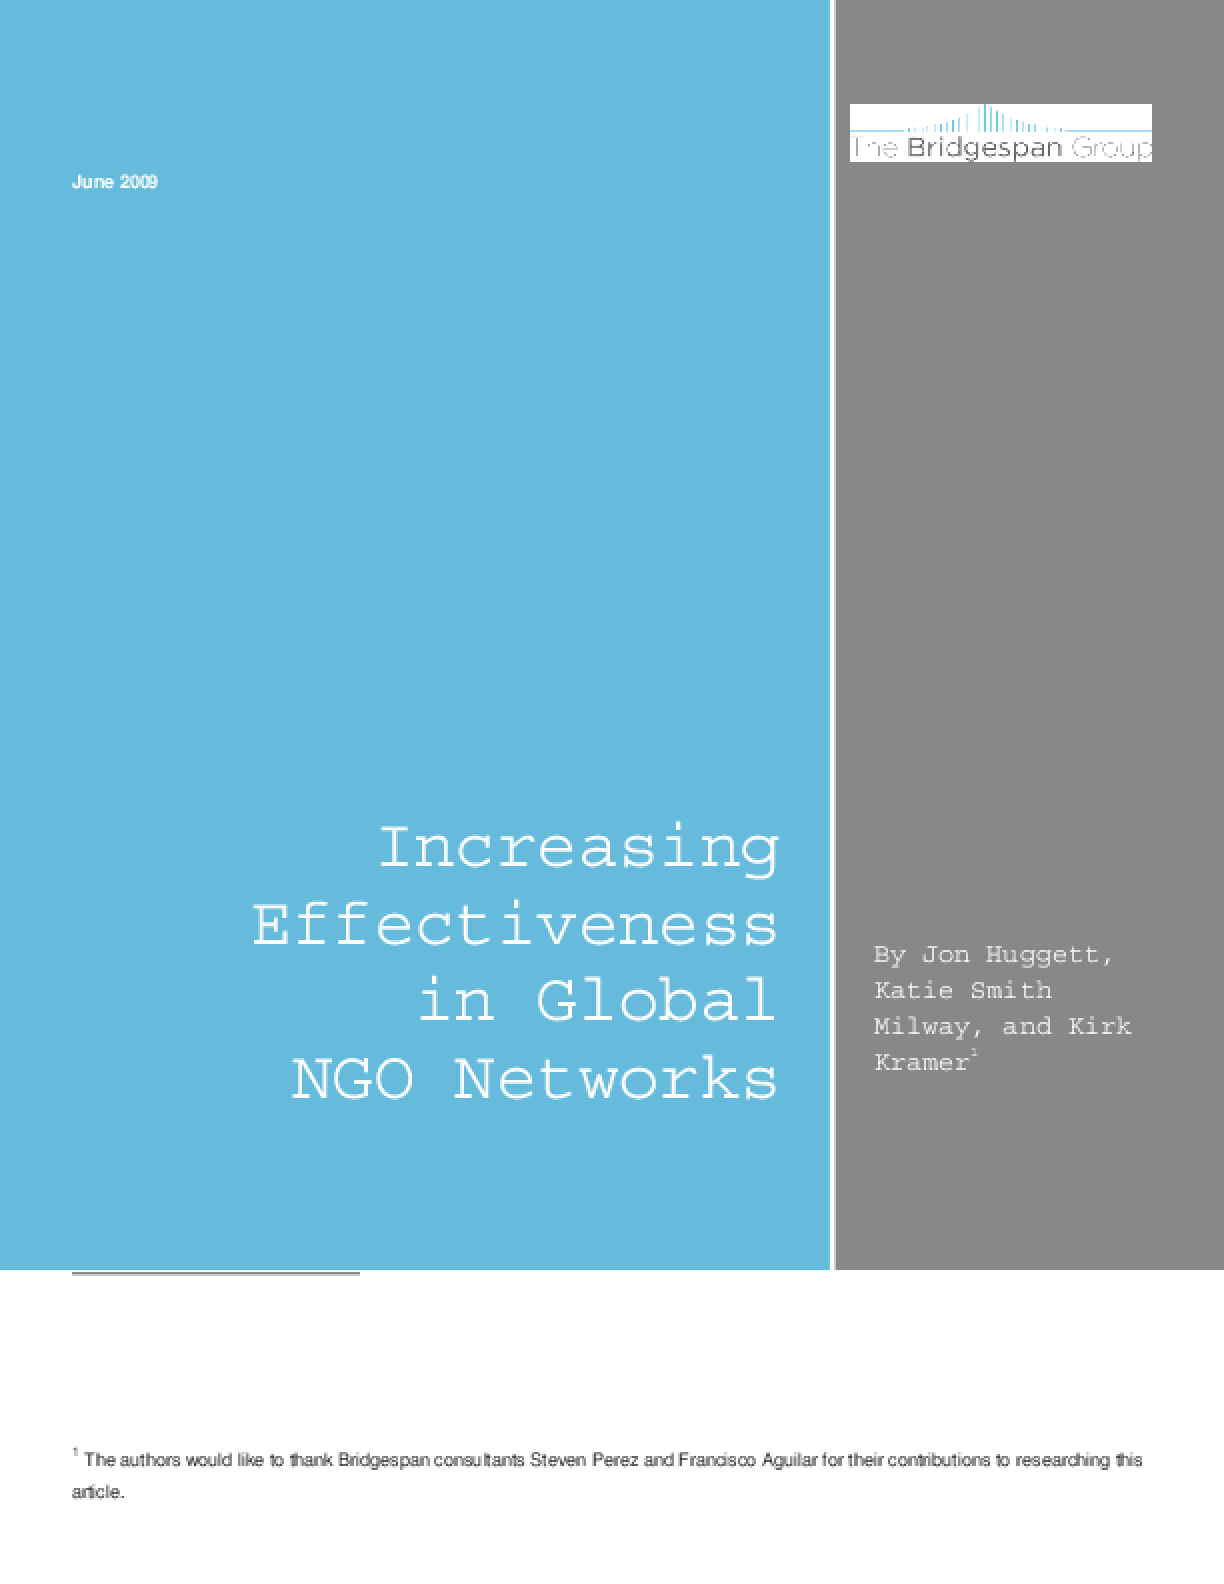 Increasing Effectiveness in Global NGO Networks